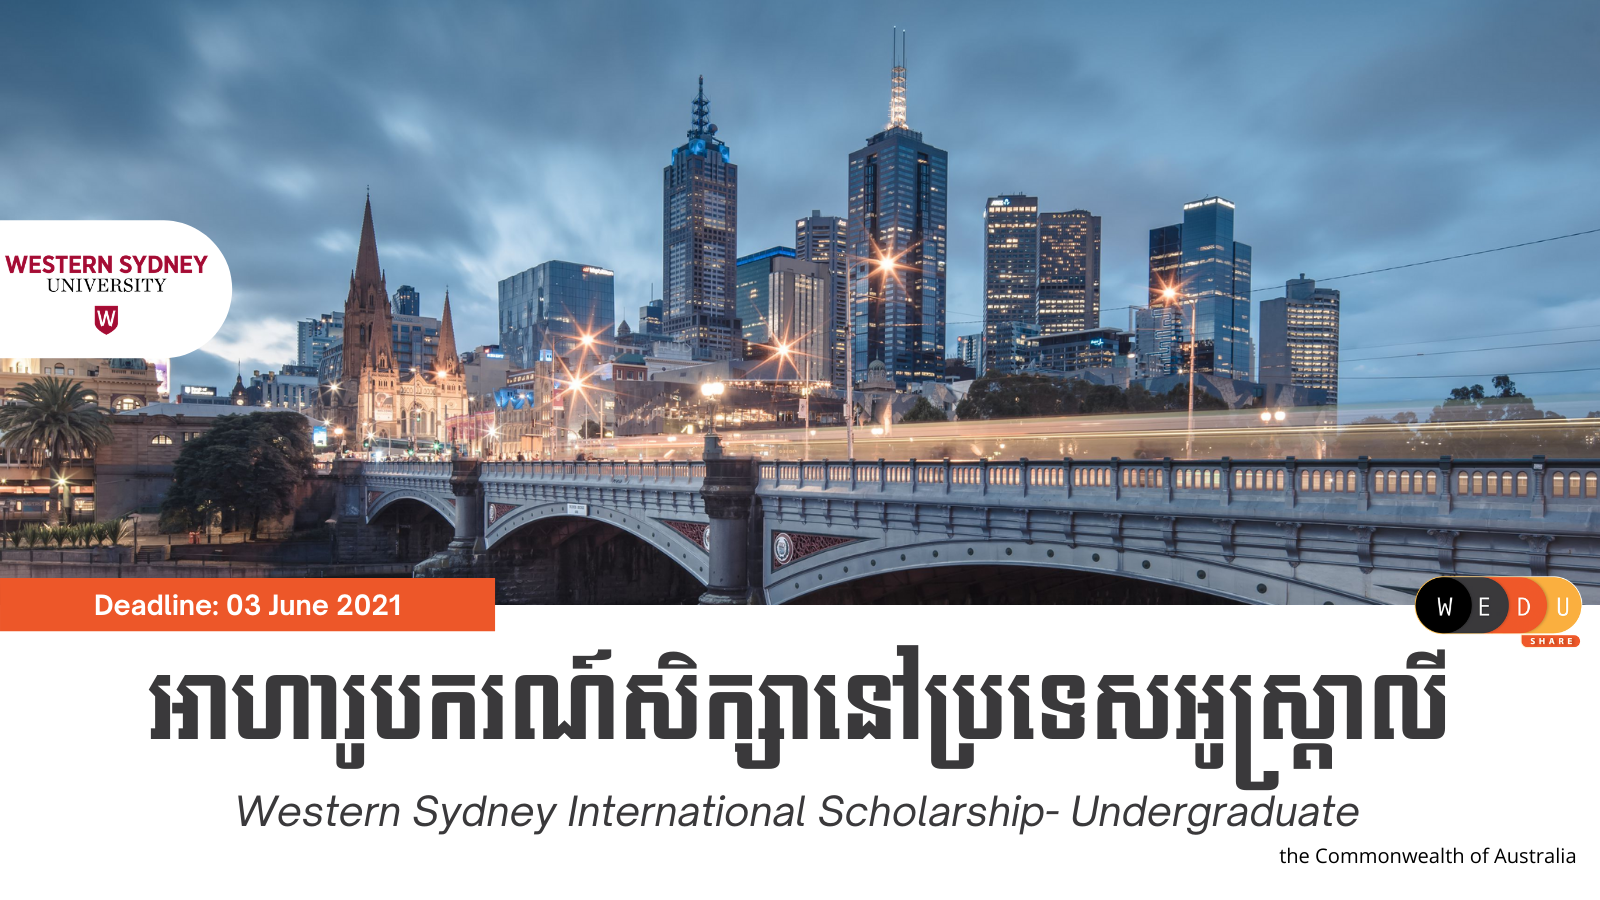 Western Sydney International Scholarship- Undergraduate